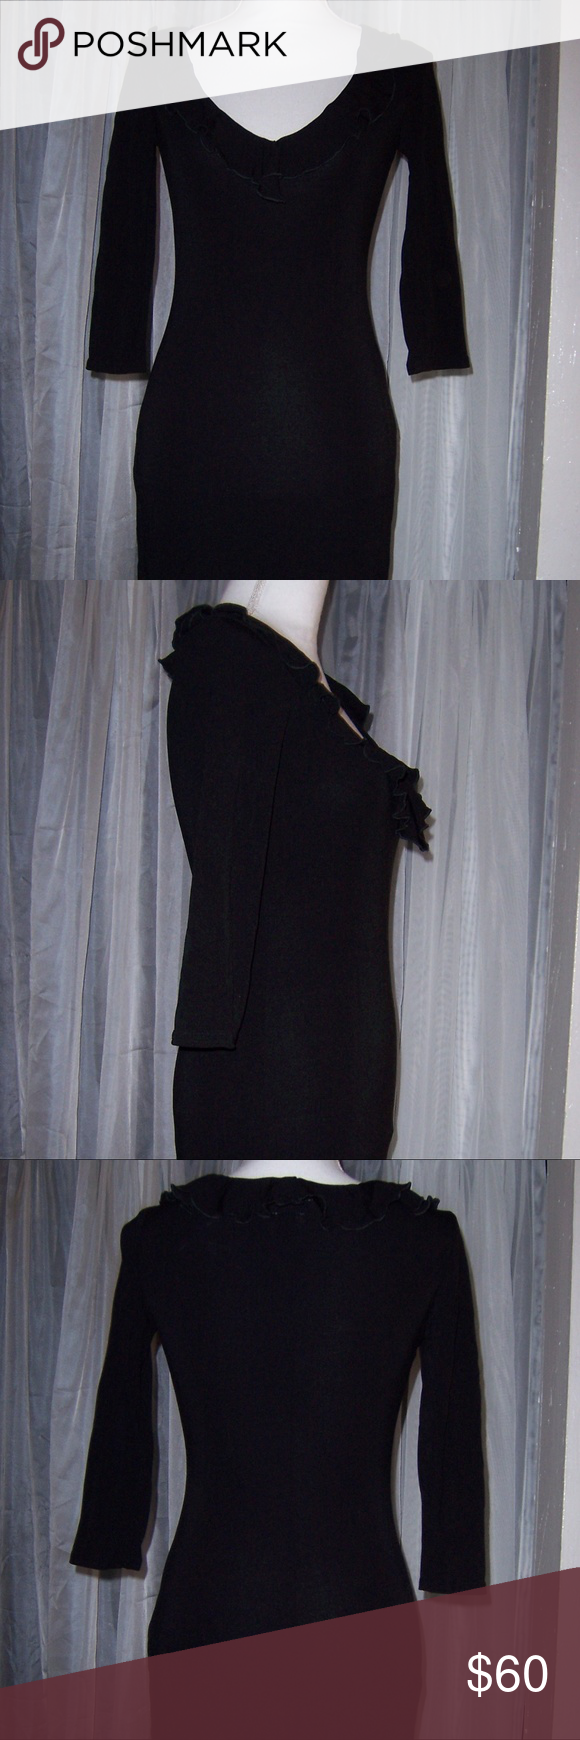 New hugo buscati collection little black dress xs new without tags